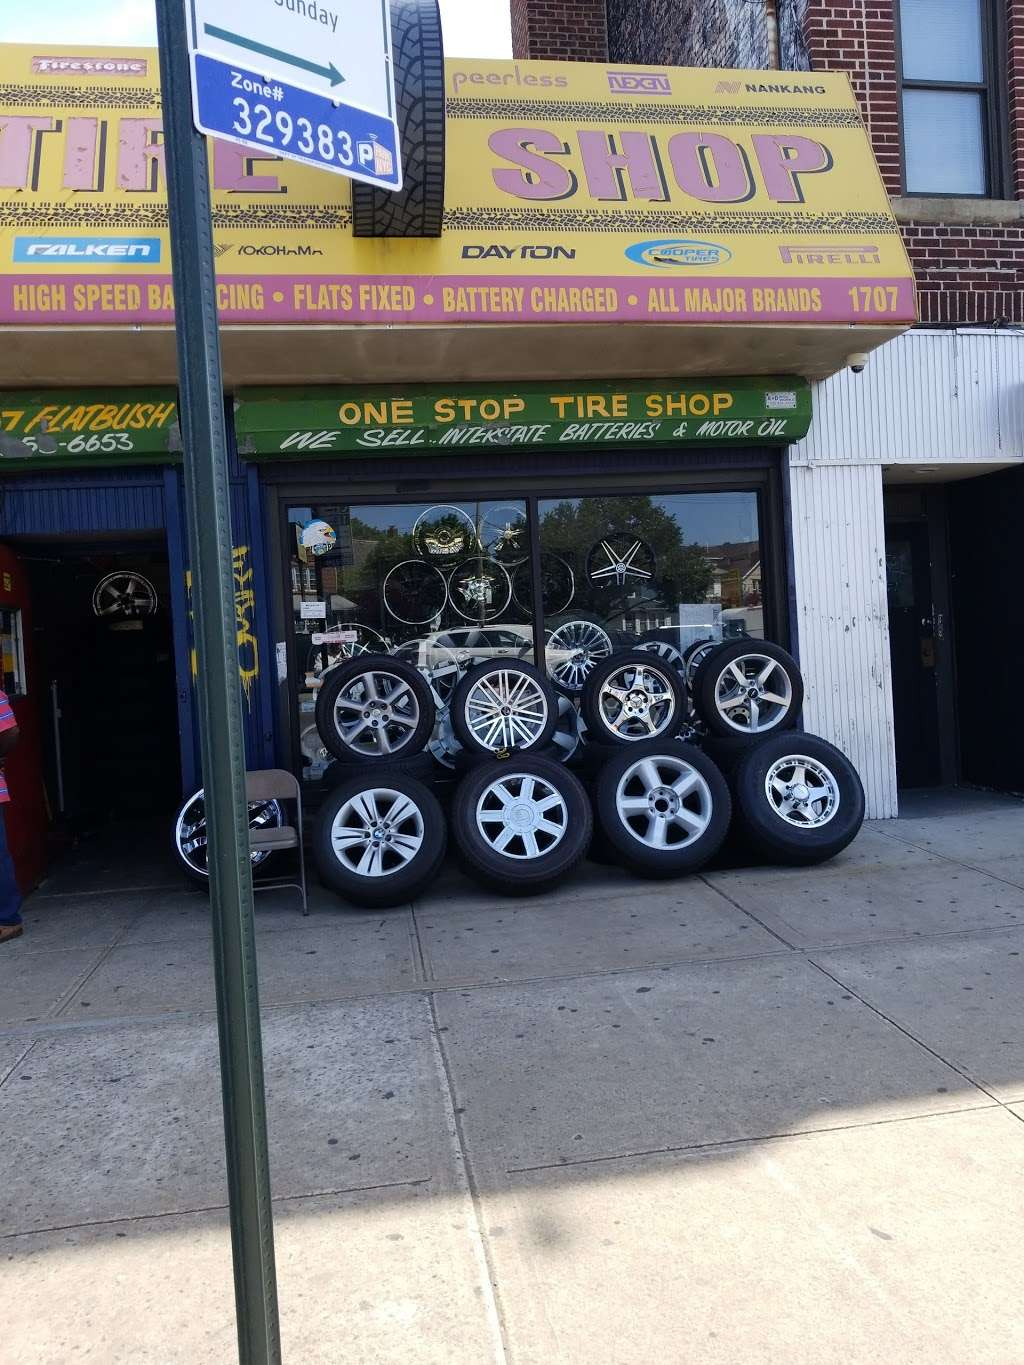 One Stop Tire Shop - car repair  | Photo 3 of 10 | Address: 1707 Flatbush Ave, Brooklyn, NY 11210, USA | Phone: (718) 253-6653